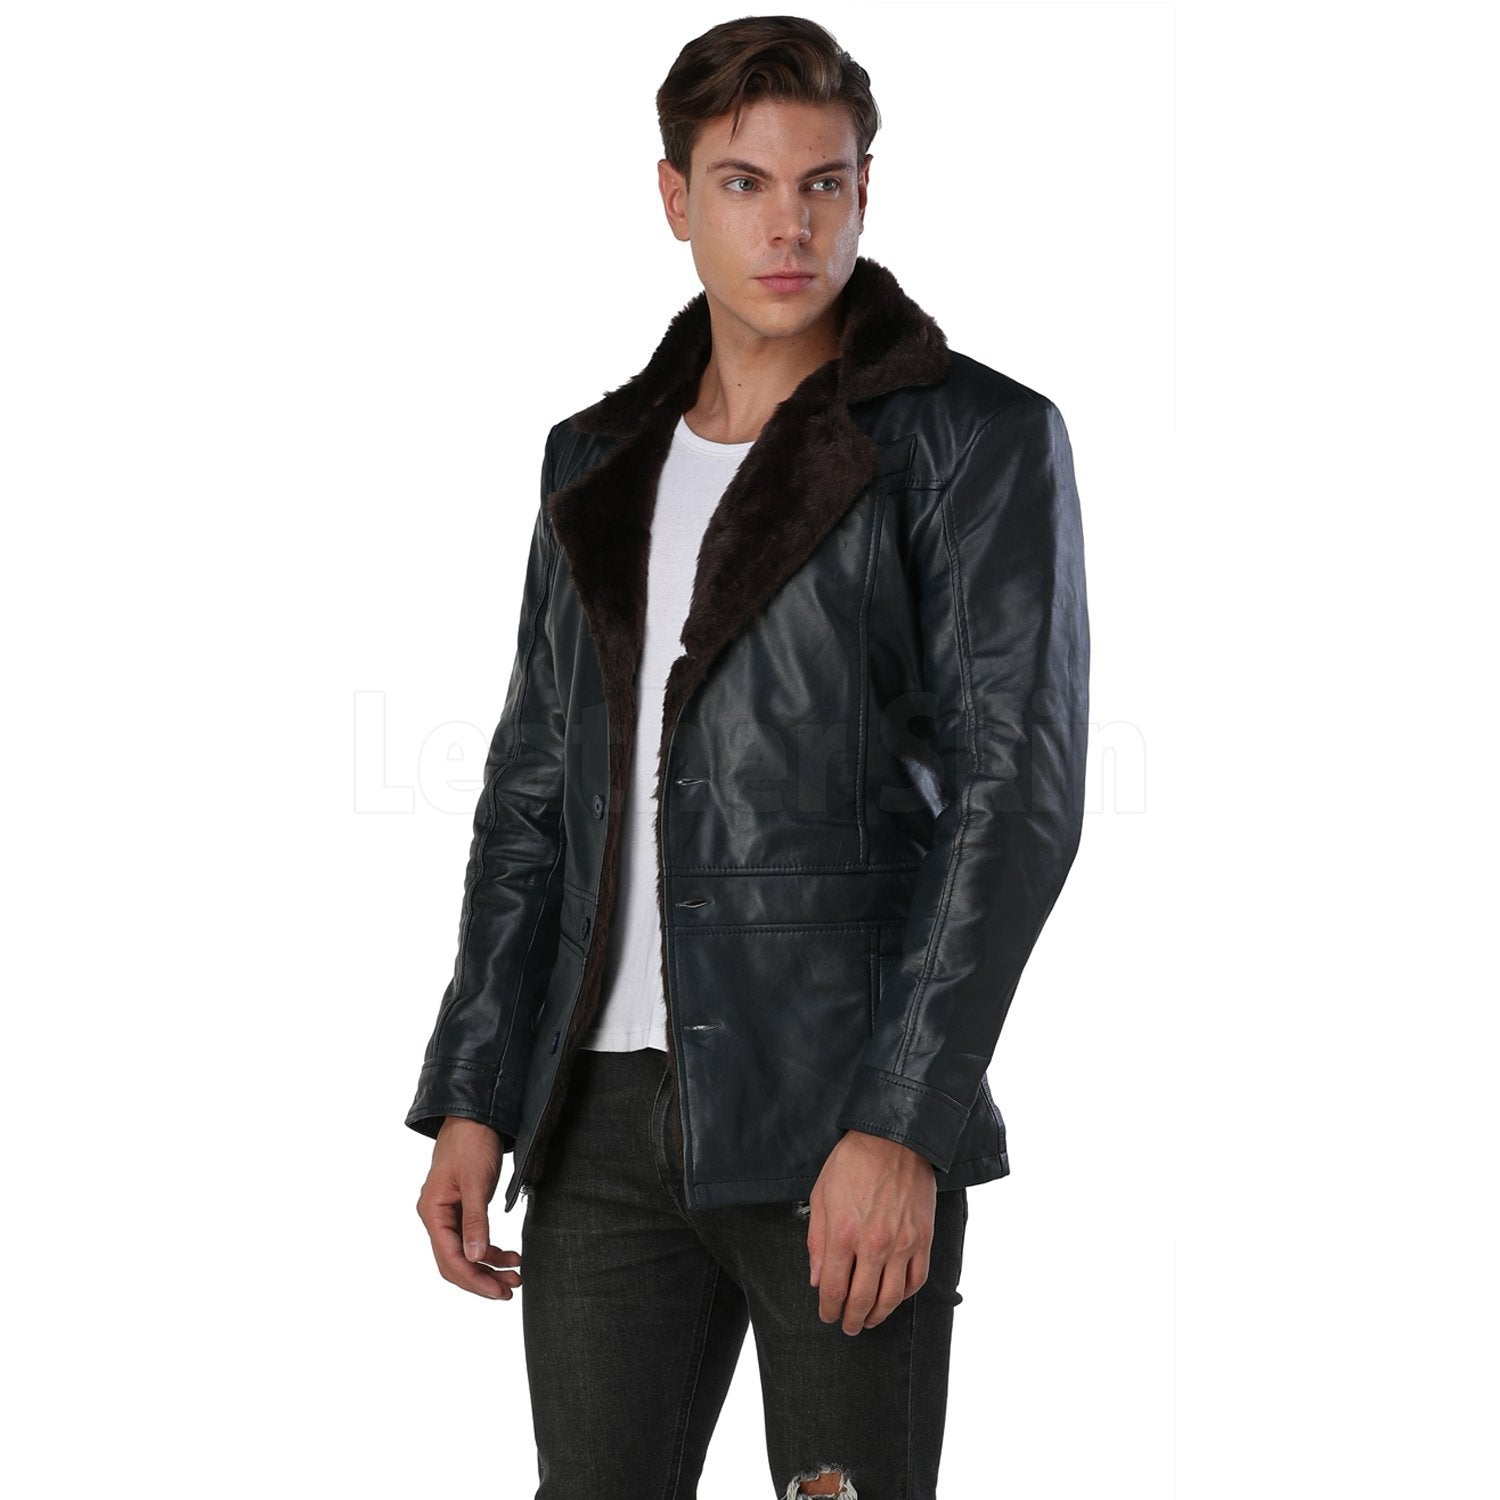 Men's Navy Blue Leather Coat